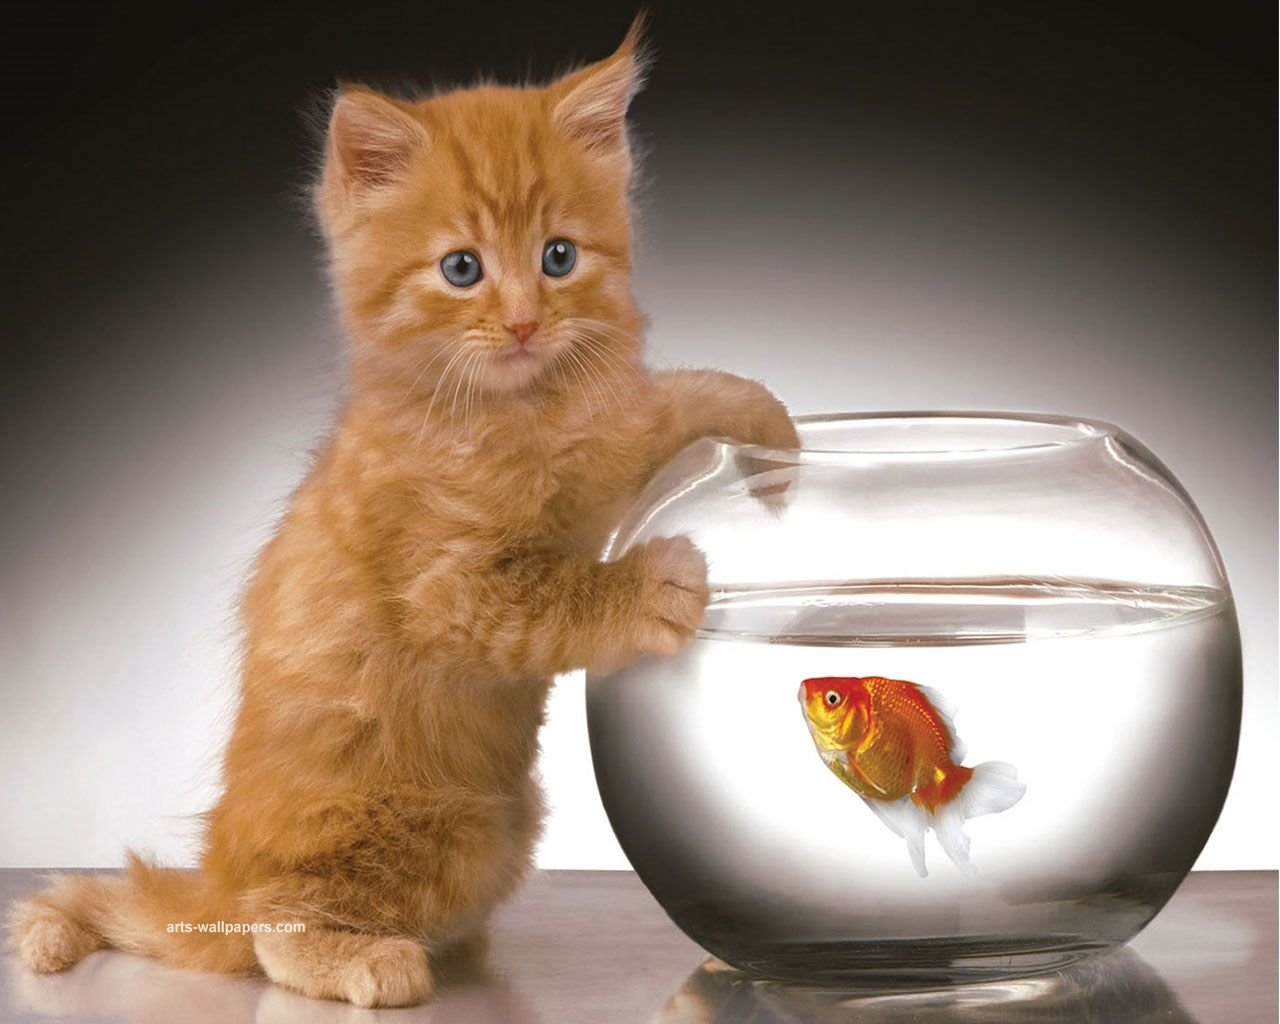 What I M Just Saying Hello Adorable Ginger Kitty And A Goldfish Kitten Wallpaper Kittens Kittens Cutest